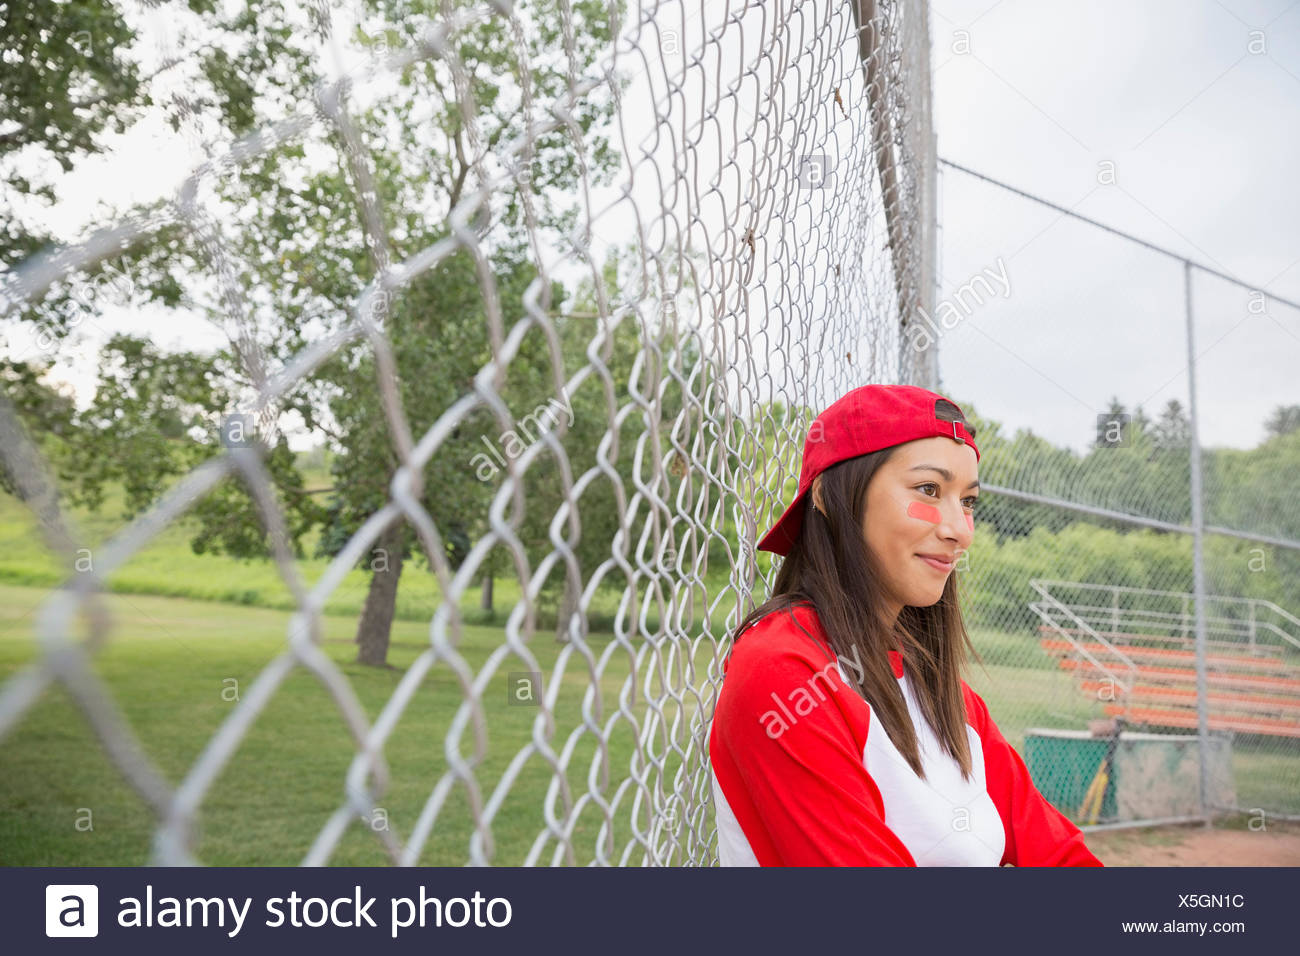 Baseball player standing by chain link fence - Stock Image